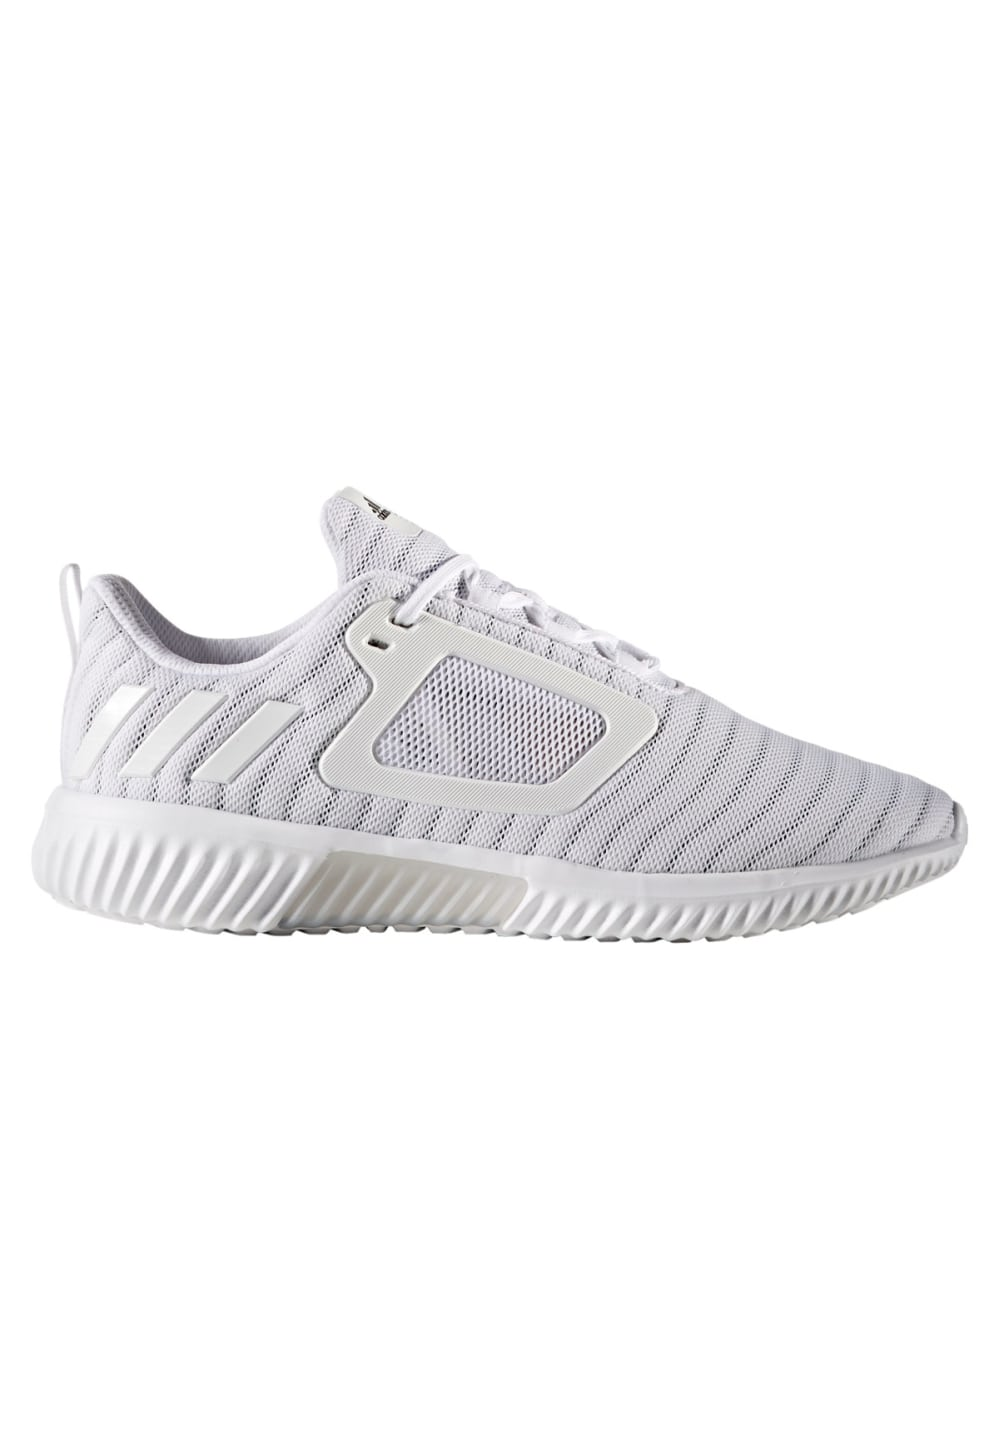 the latest ef3d9 459b5 adidas Climacool Cm - Running shoes for Men - White